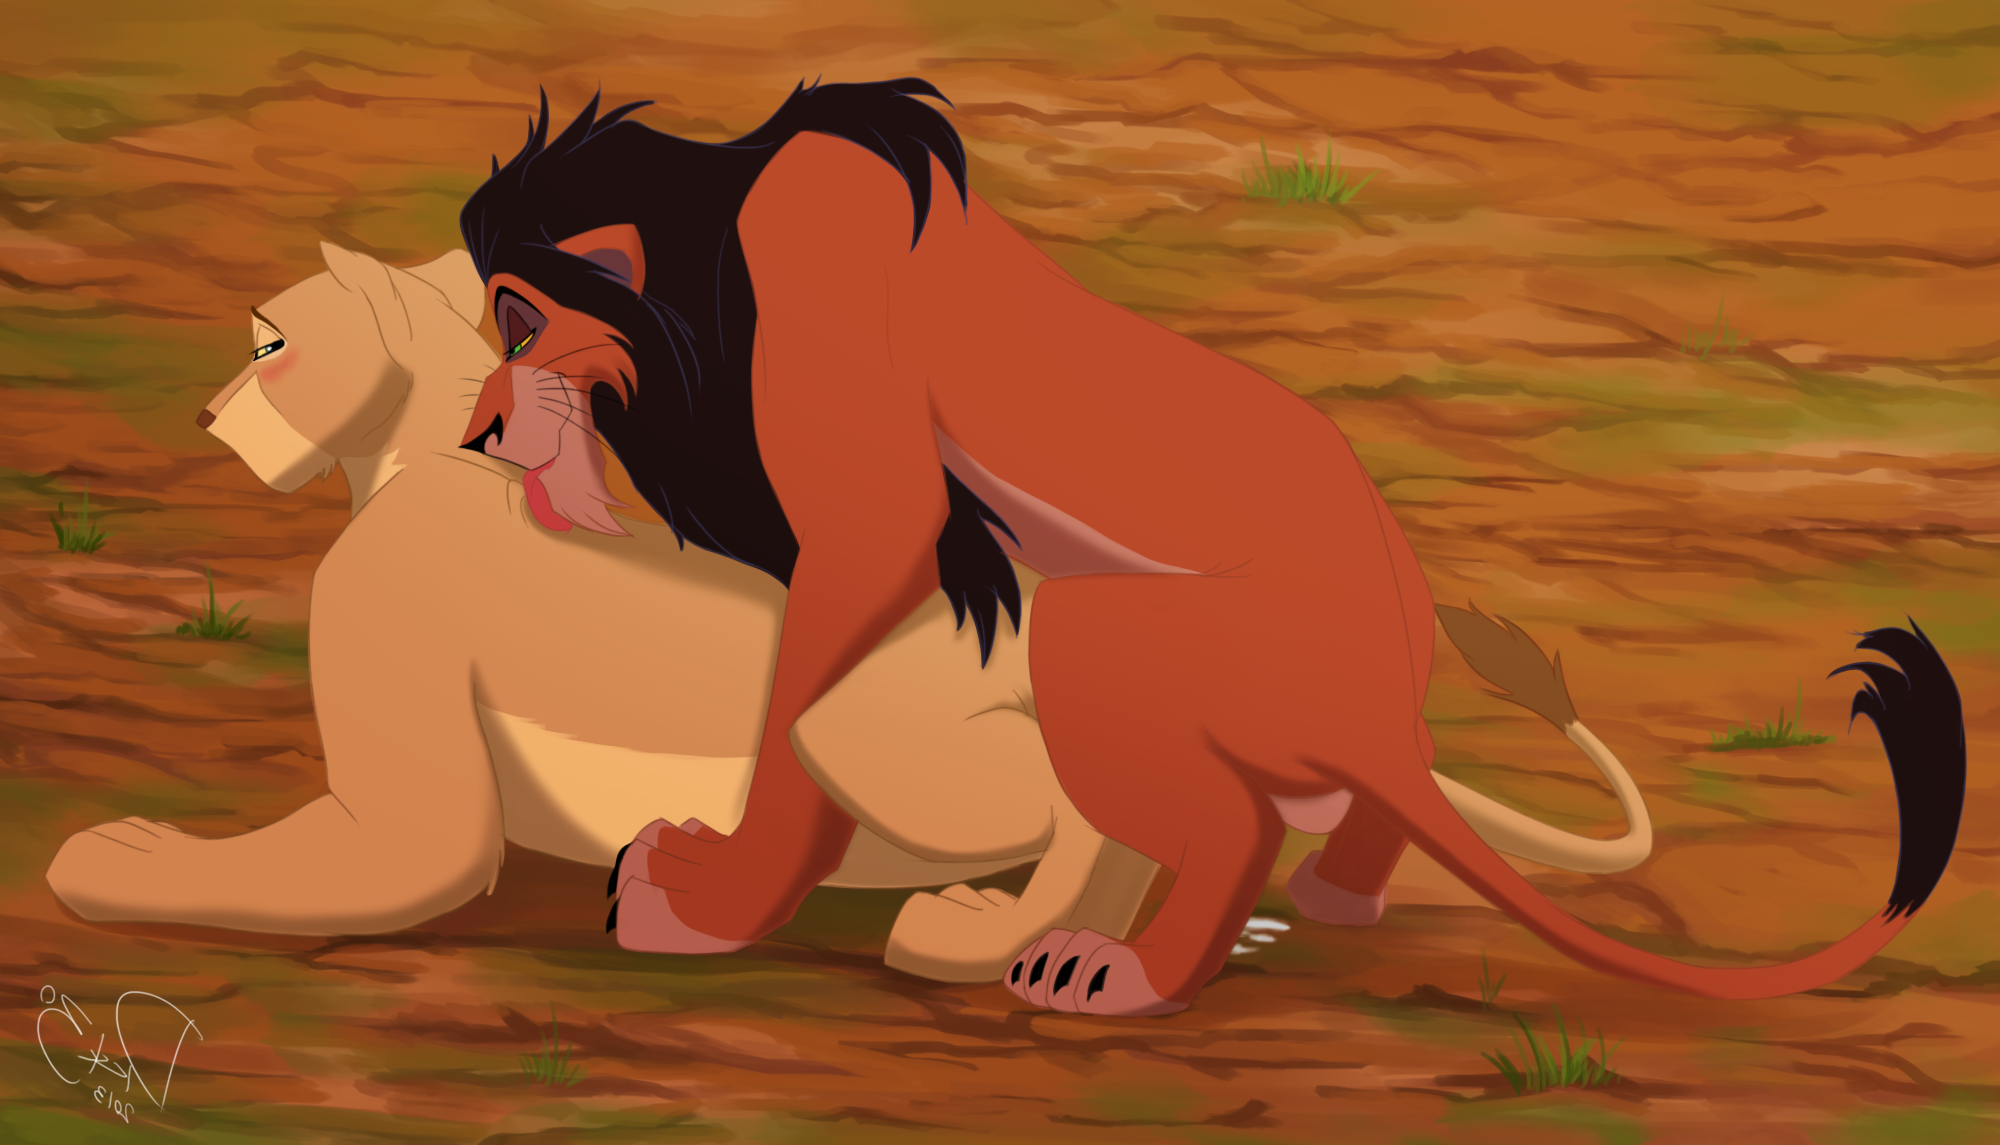 Useful topic Lion king sex video accept. The